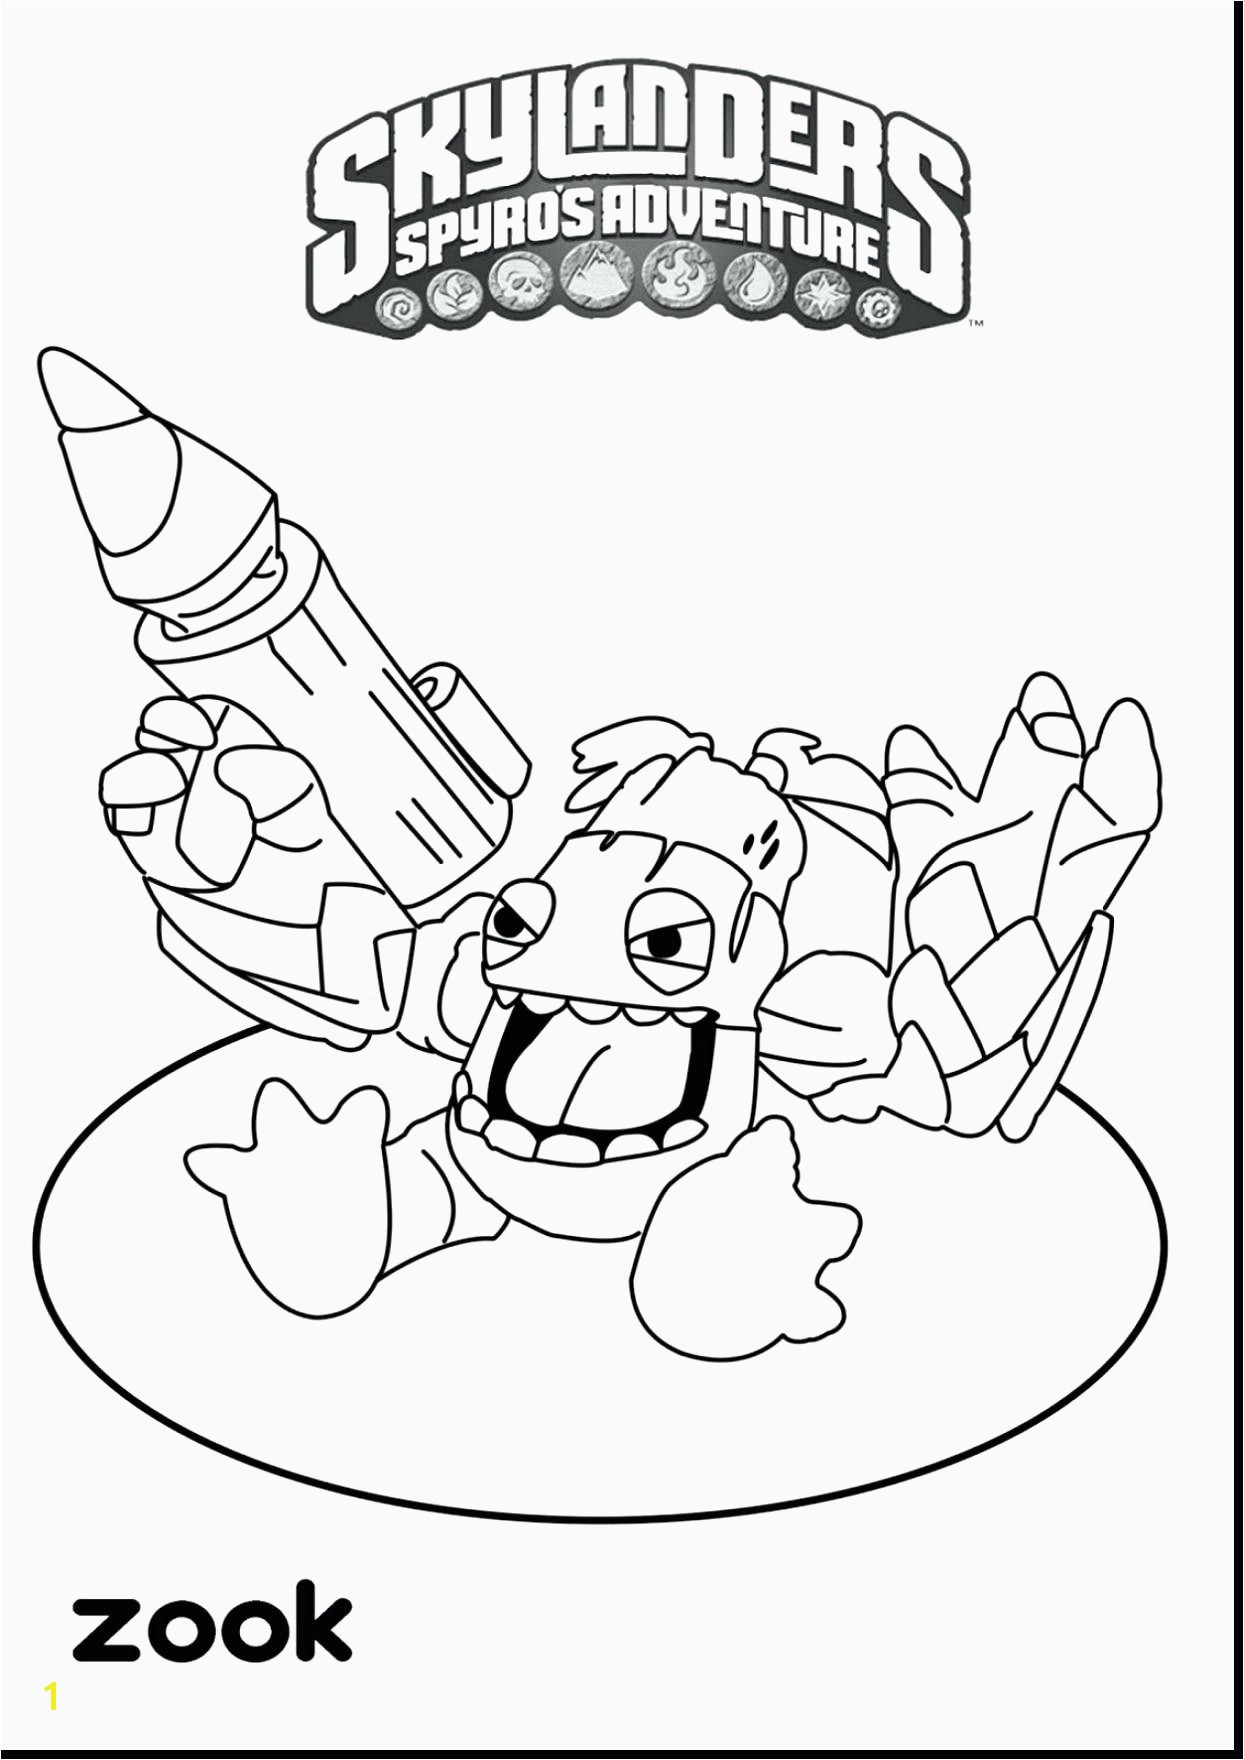 Coloring Book Pages Babies Fresh Baby Coloring Pages New Media Cache Ec0 Pinimg originals 2b